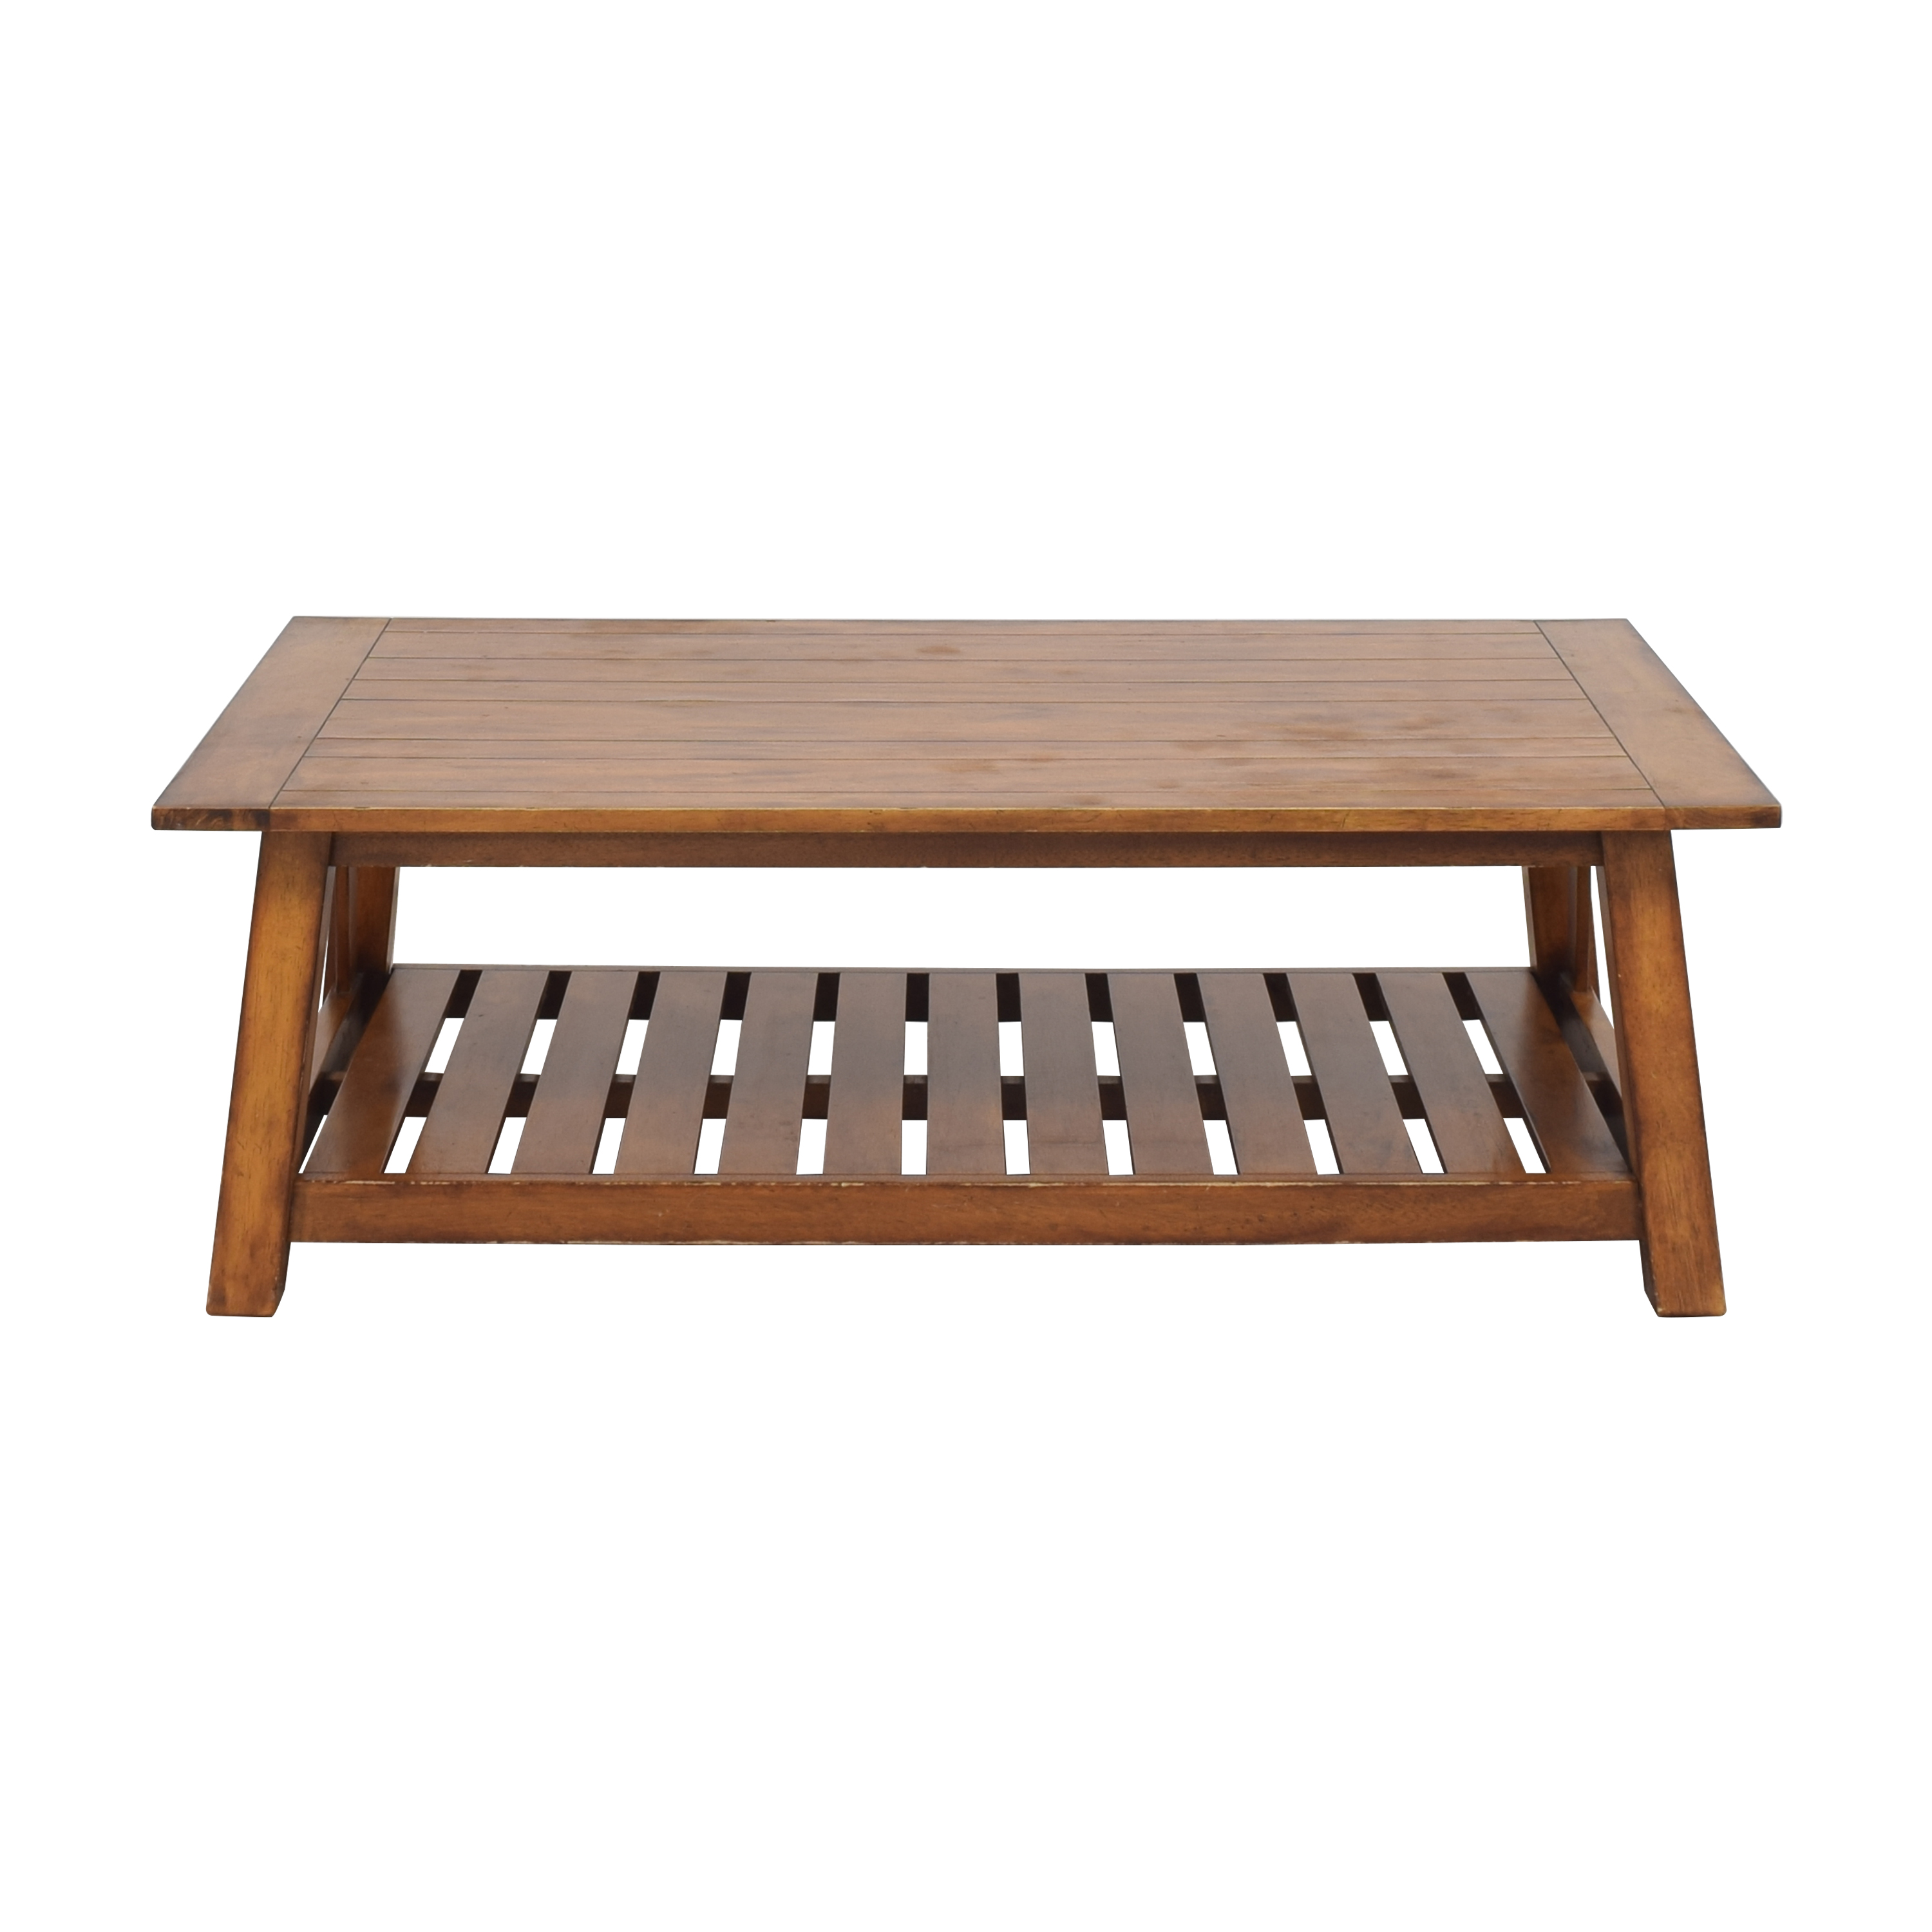 Ethan Allen Ethan Allen Cottage Coffee Table coupon